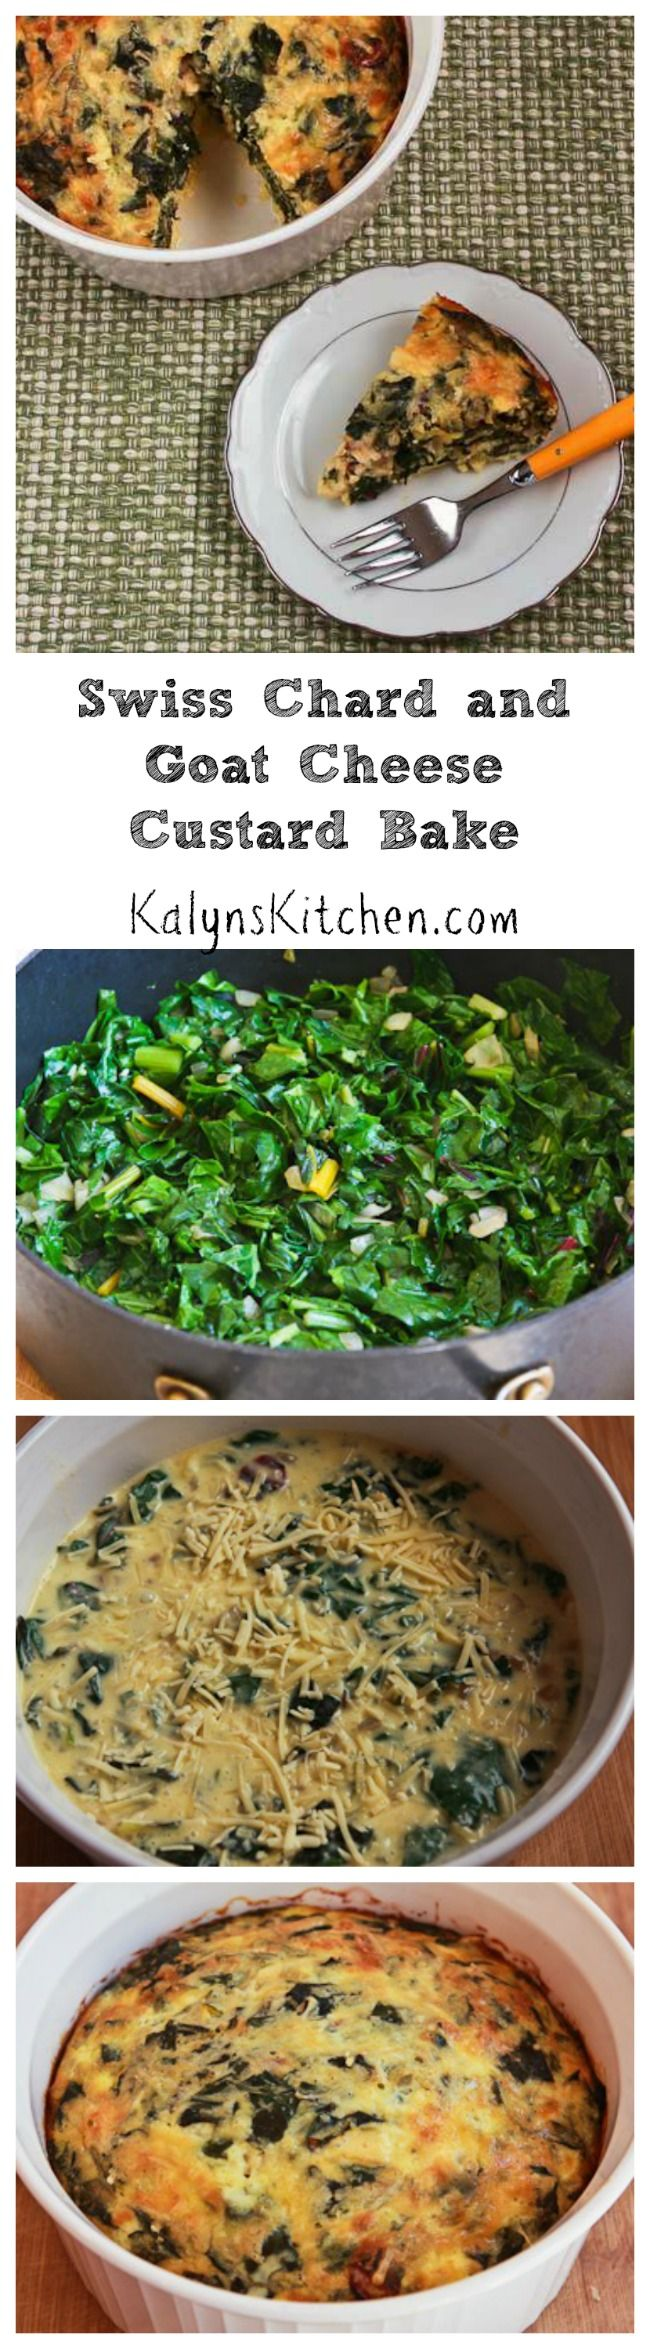 This Swiss Chard and Goat Cheese Custard Bake is a nice treat when you ...